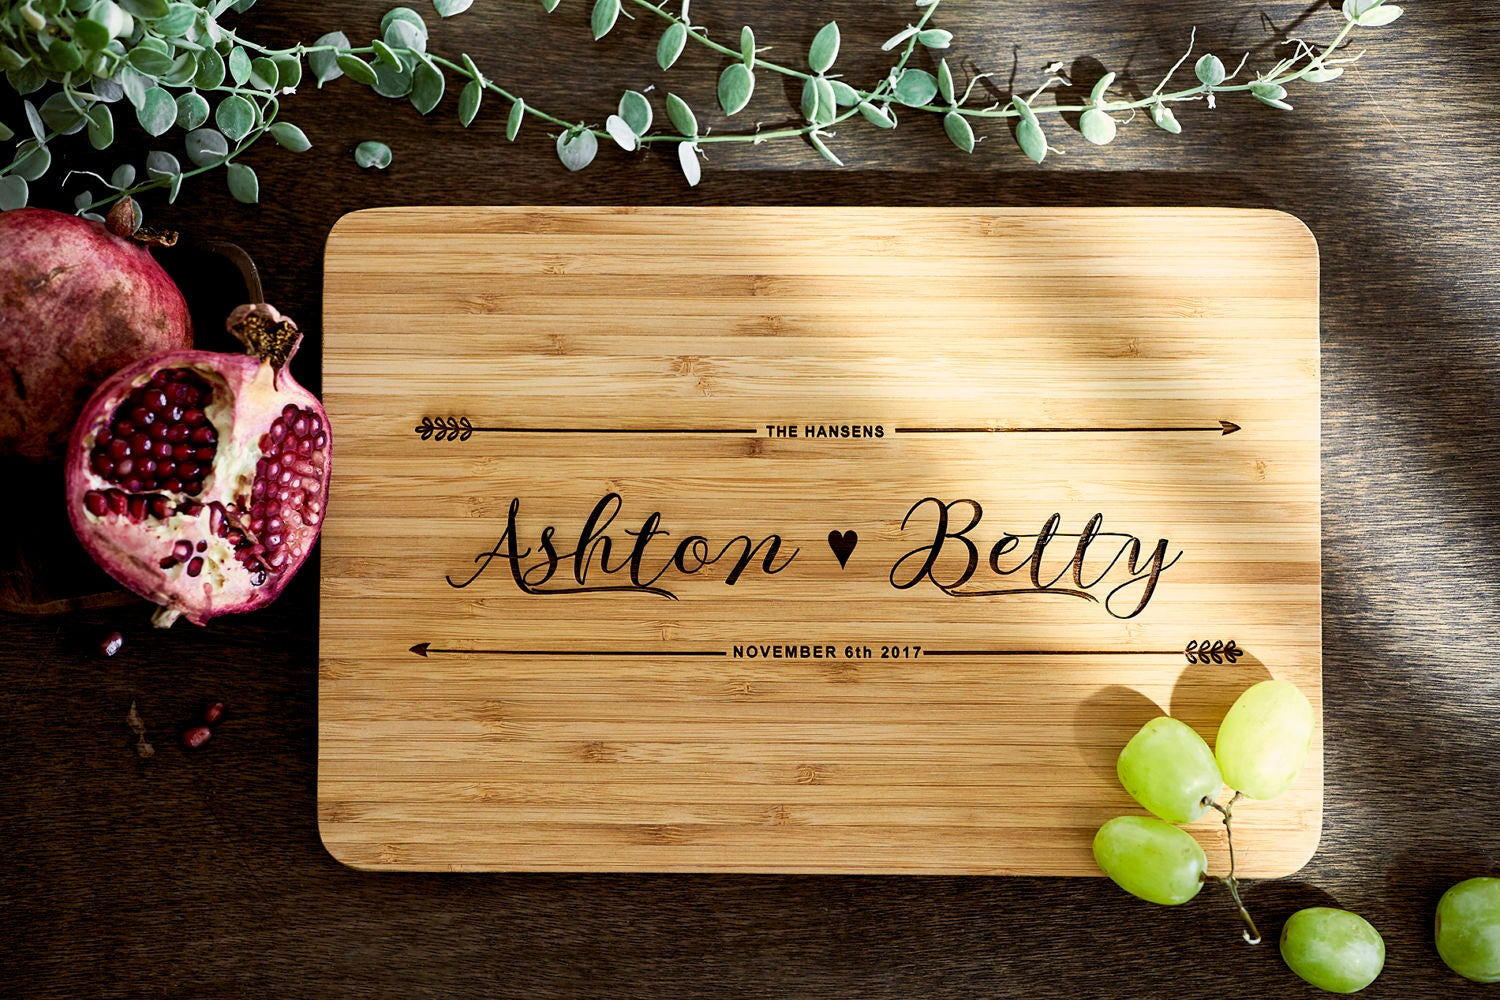 Christmas Gift Ideas Custom Name chopping board for couples | Etsy